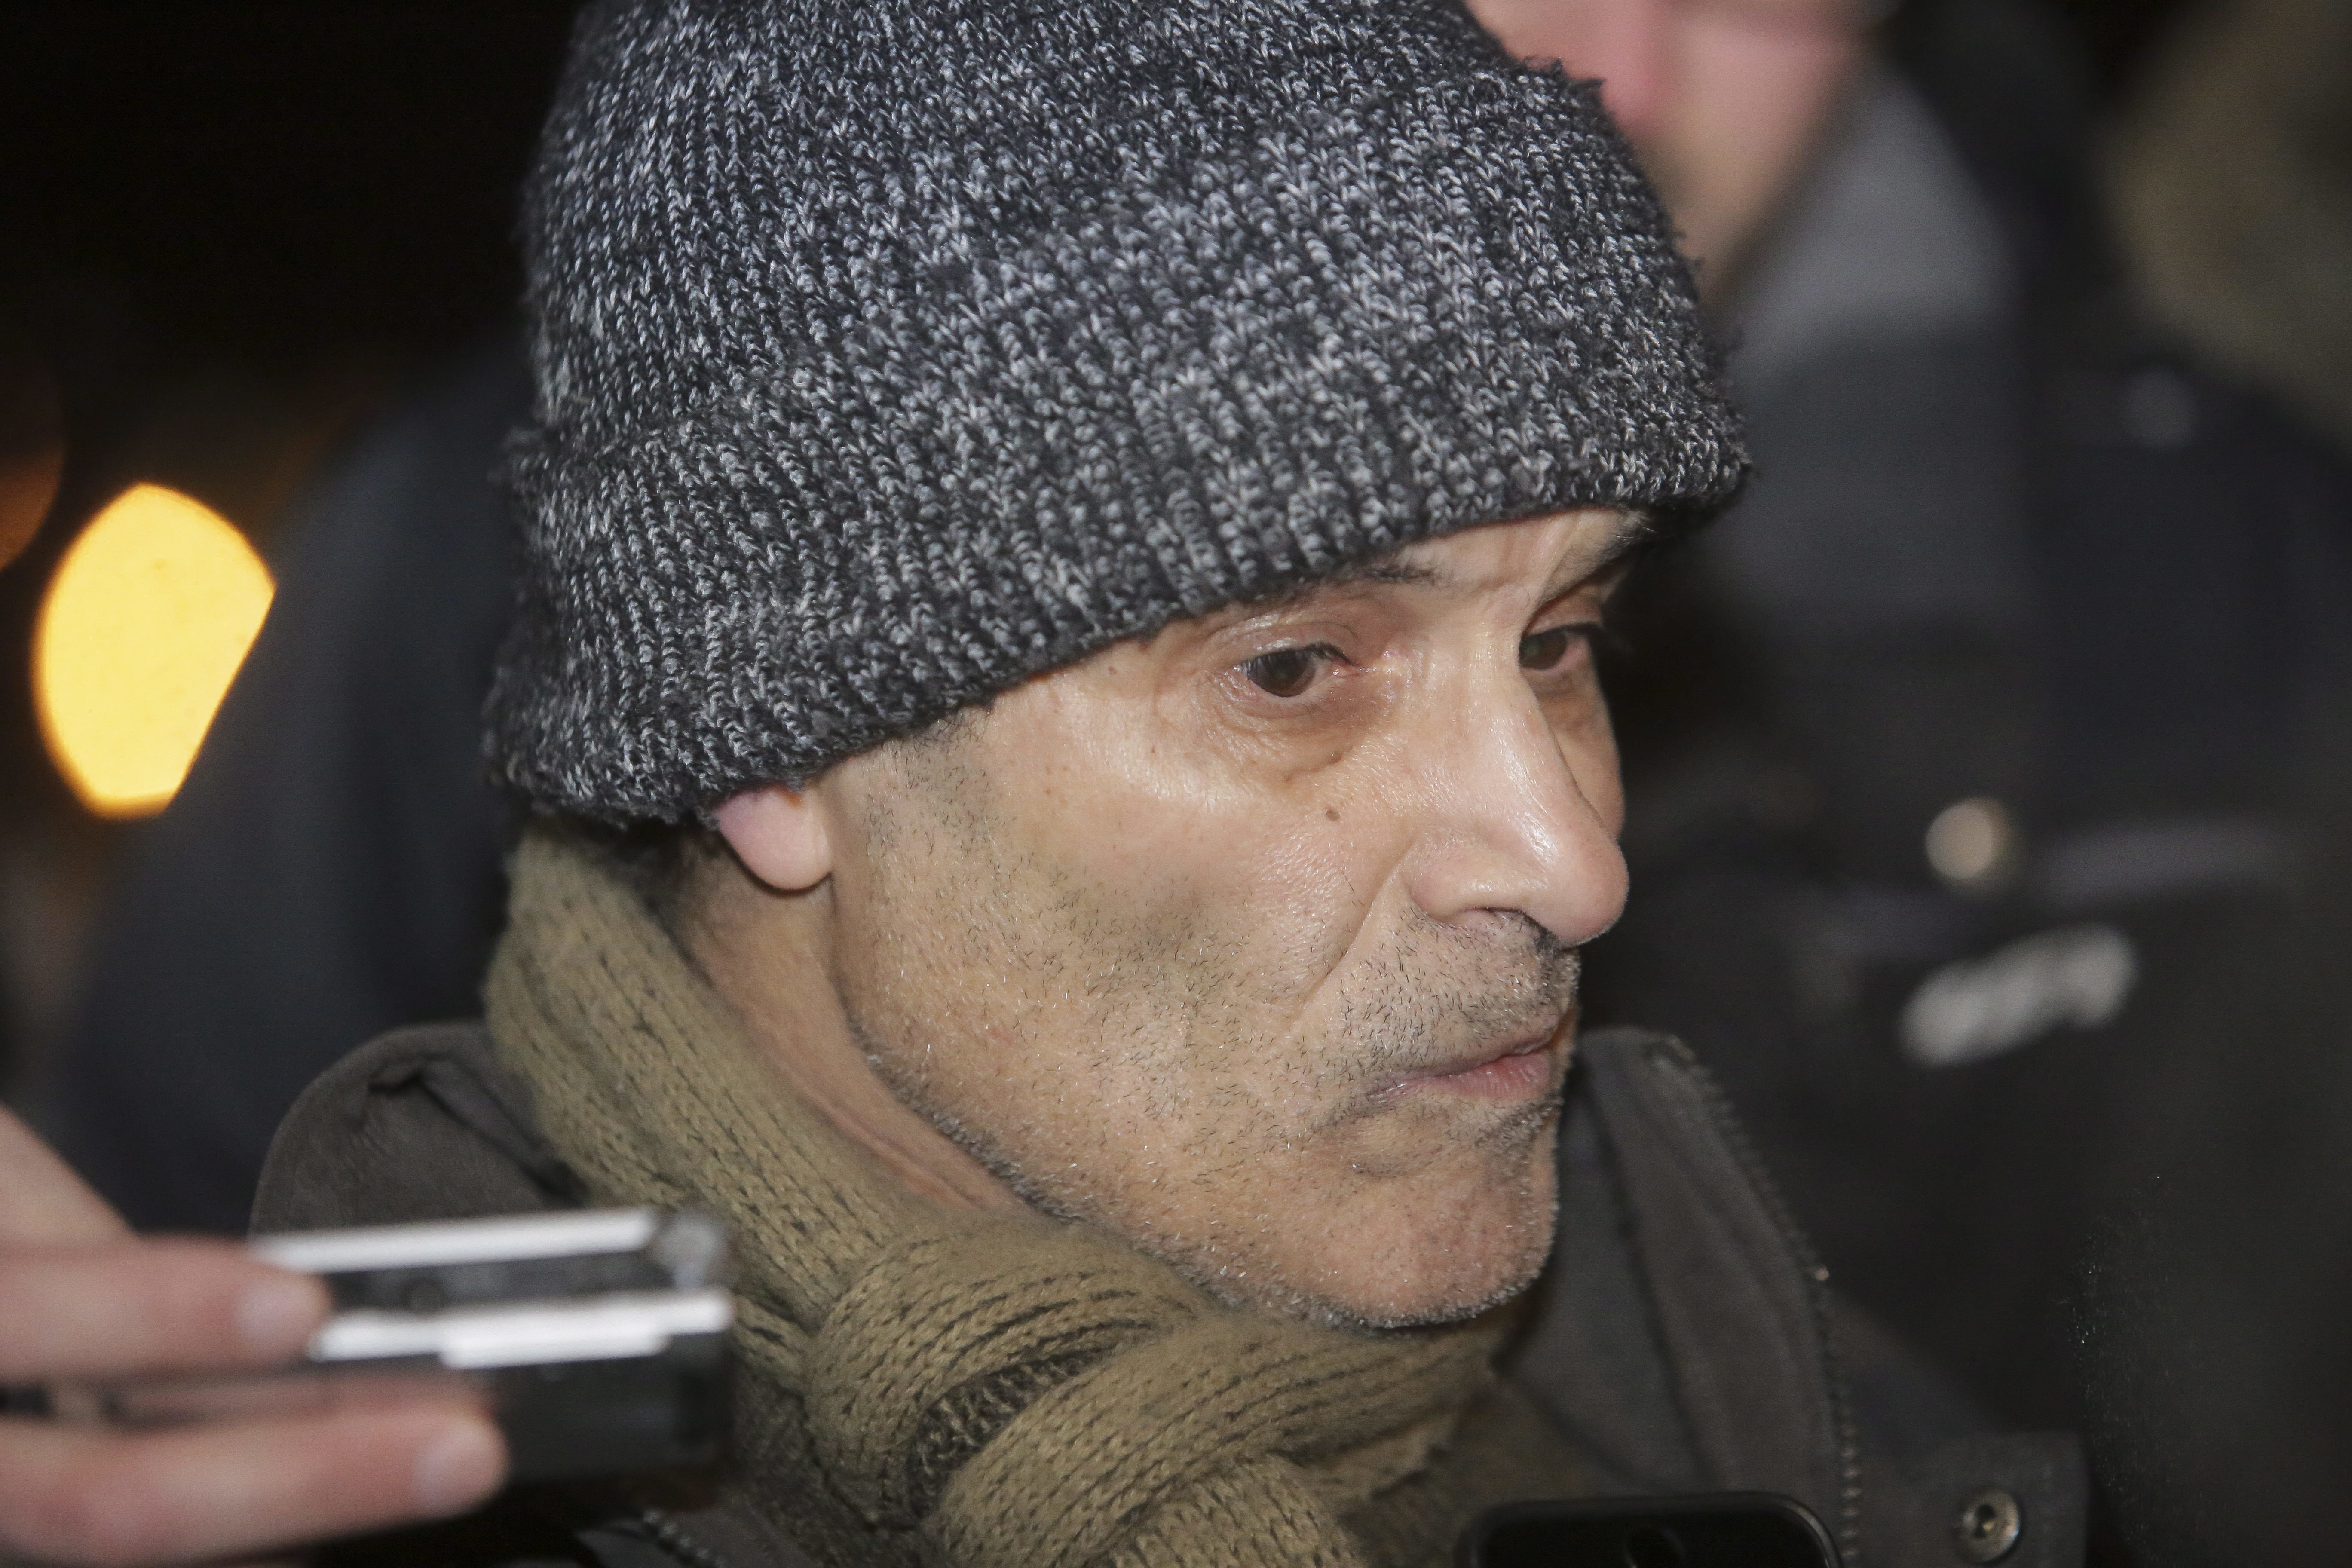 Mohamed Oudghiri speaks with the media near a Quebec City mosque after a deadly shooting on Jan. 29, 2017. (Francis Vachon/The Canadian Press via AP)